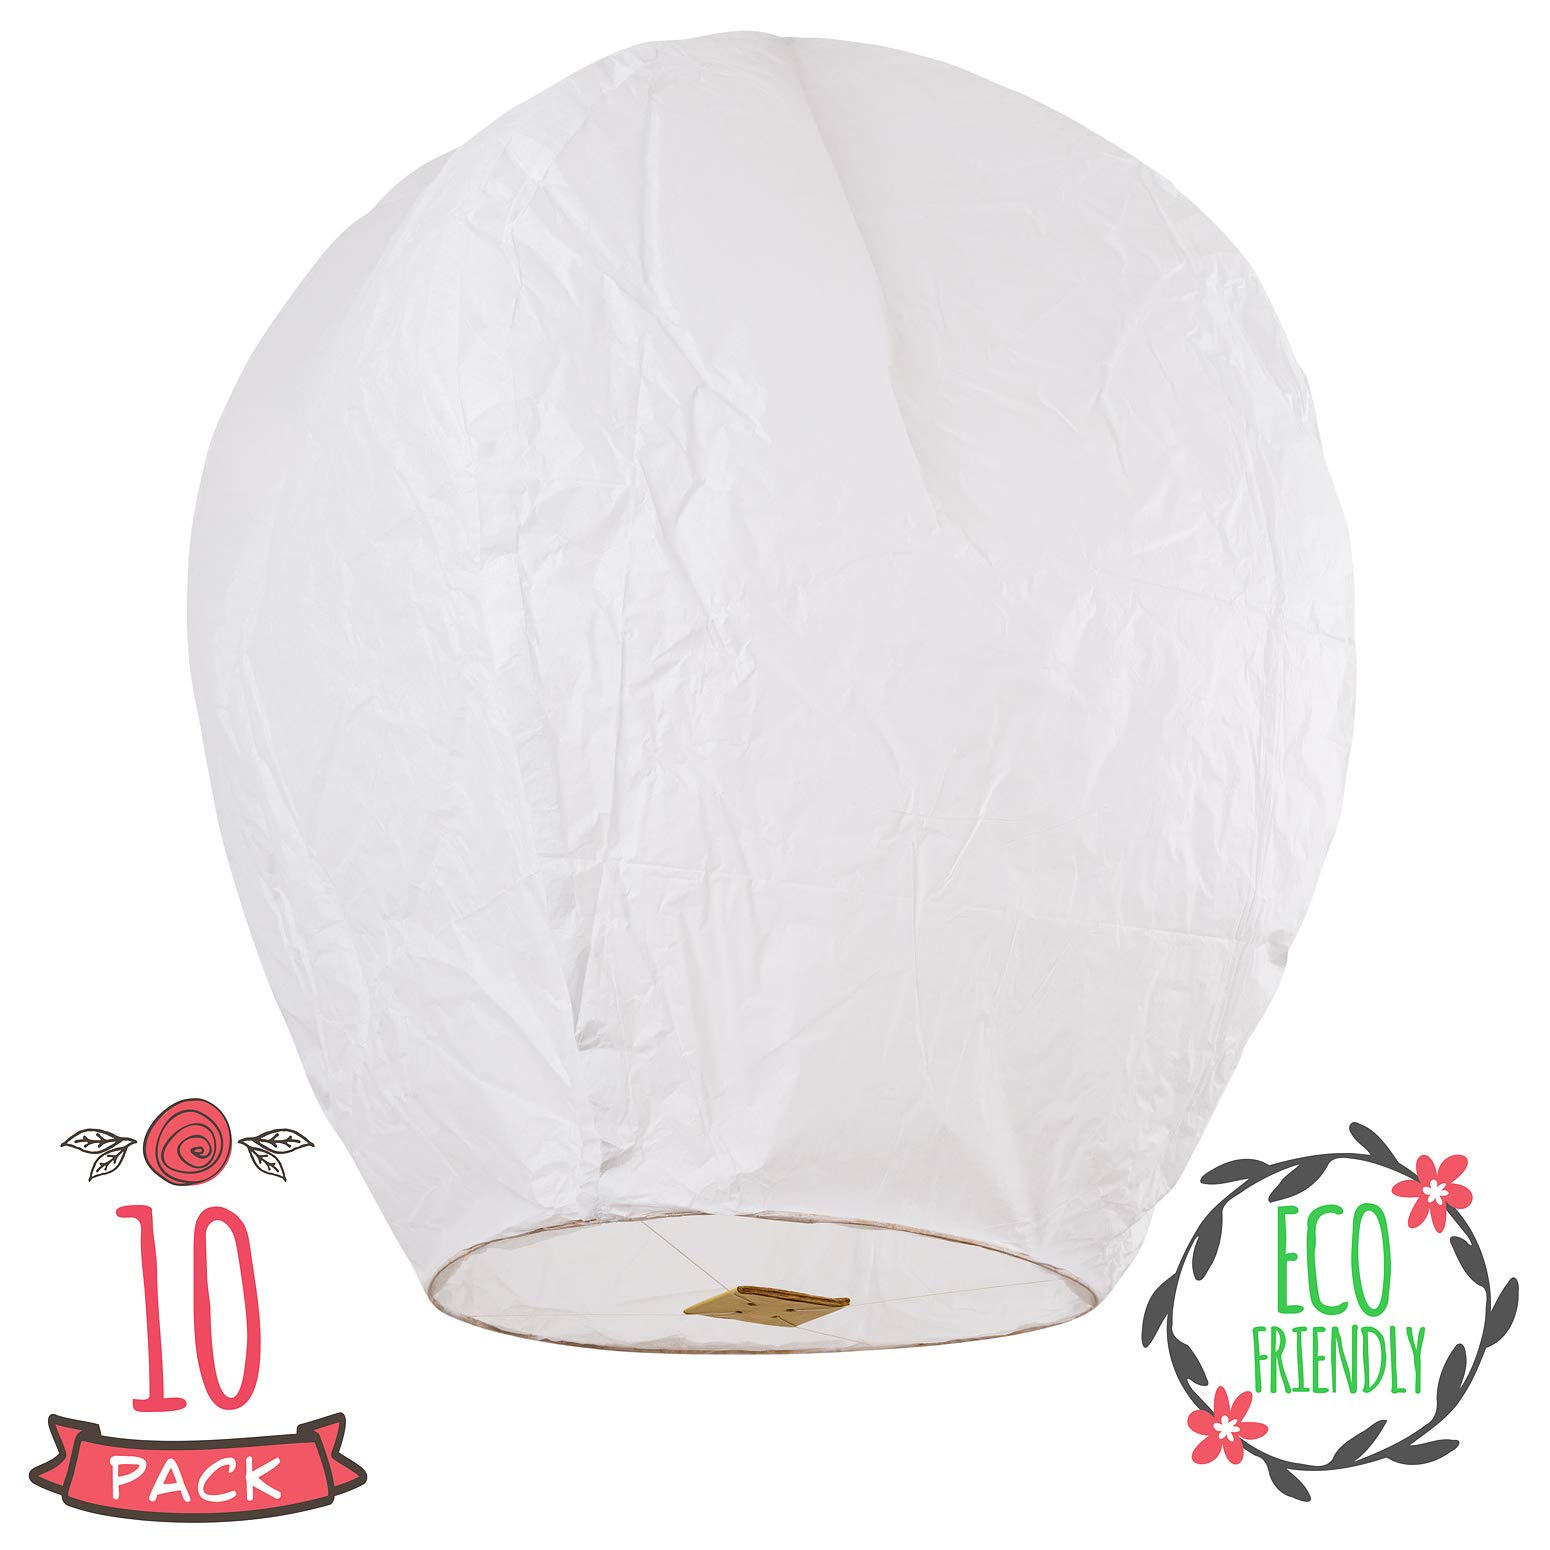 Chinese Lanterns 10-Pack White, Sky High, Fully Assembled, Biodegradable, Sky Lanterns by Coral entertainments for Birthdays, Ceremonies, Weddings. Safe to use and Flame Retardant Paper (White) by SKY HIGH (Image #1)